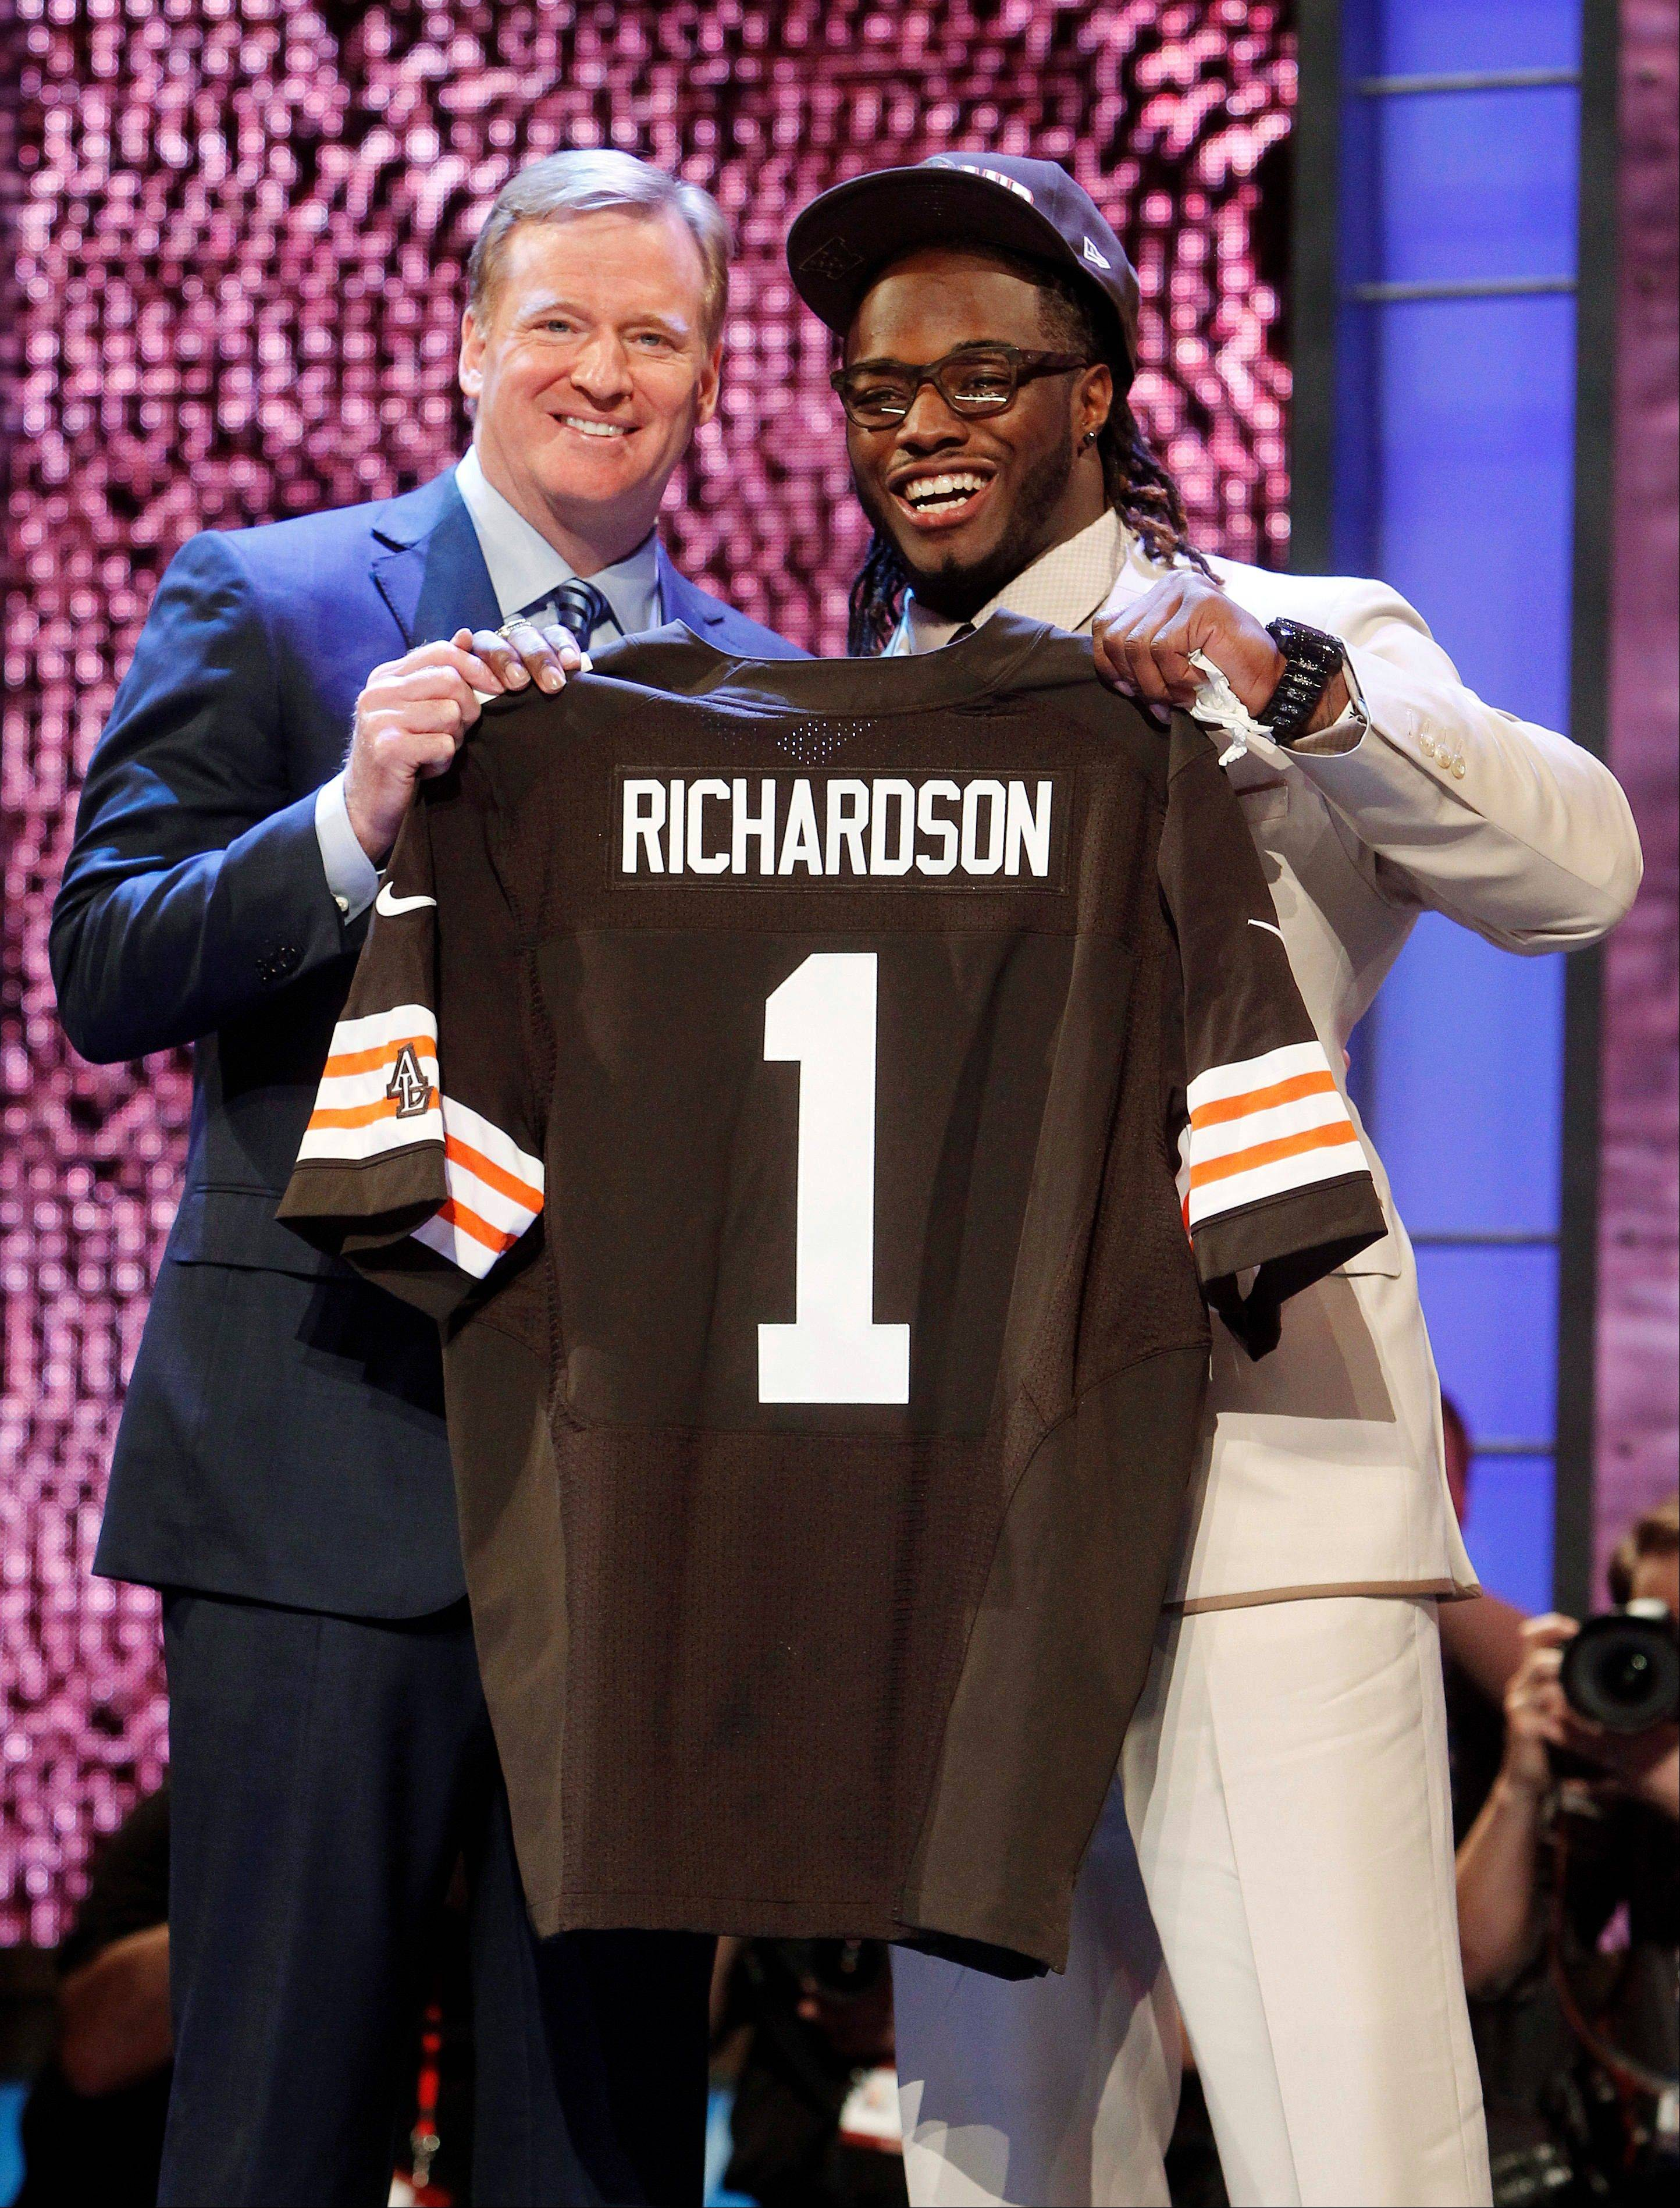 Alabama running back Trent Richardson, right, was selected by the Cleveland Browns as the third pick overall in the NFL draft in April.